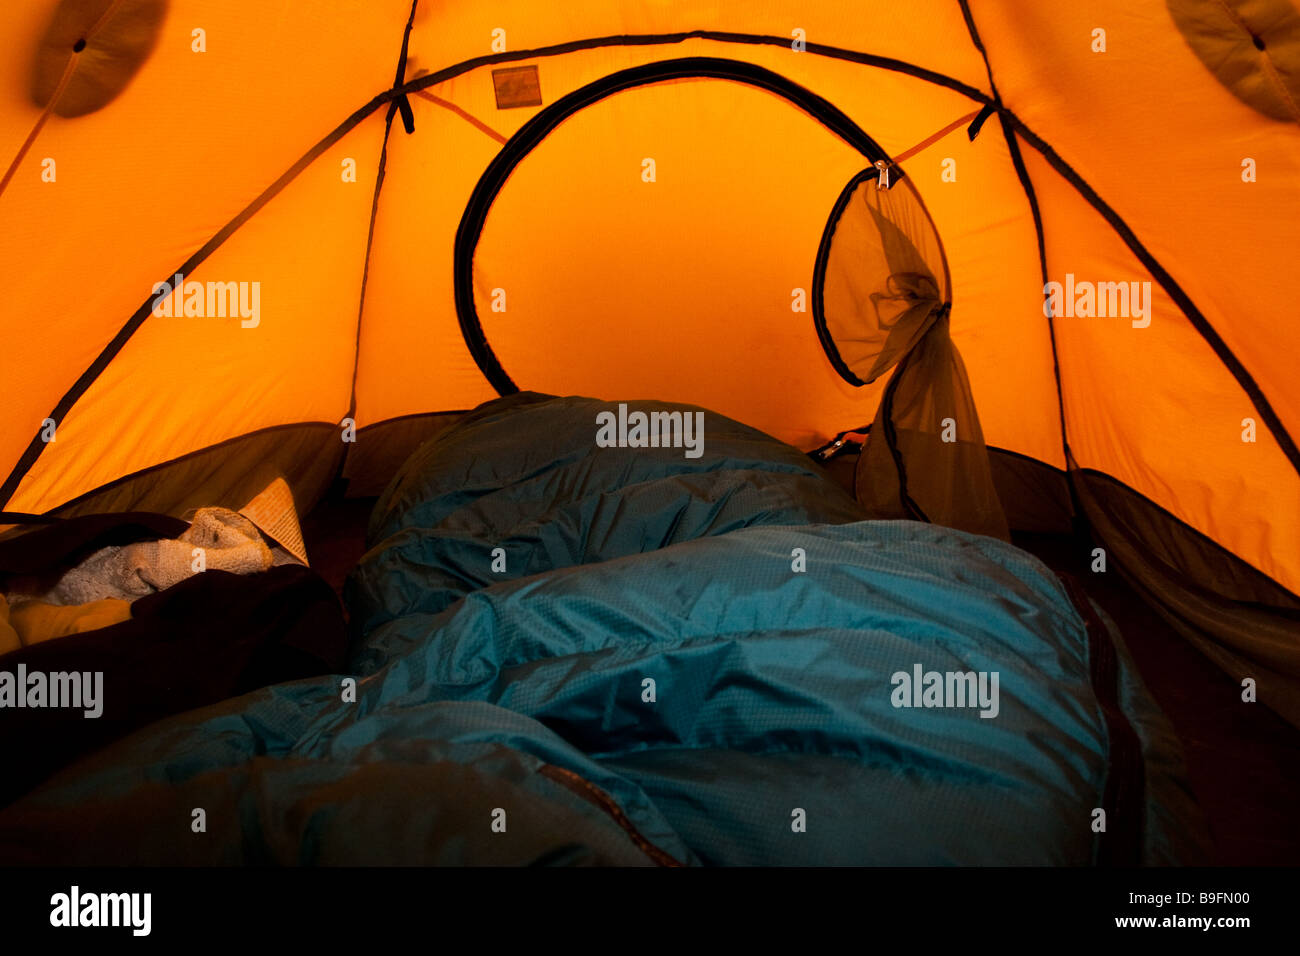 Inside of a tent with sleeping bag Stock Photo: 23088016 - Alamy